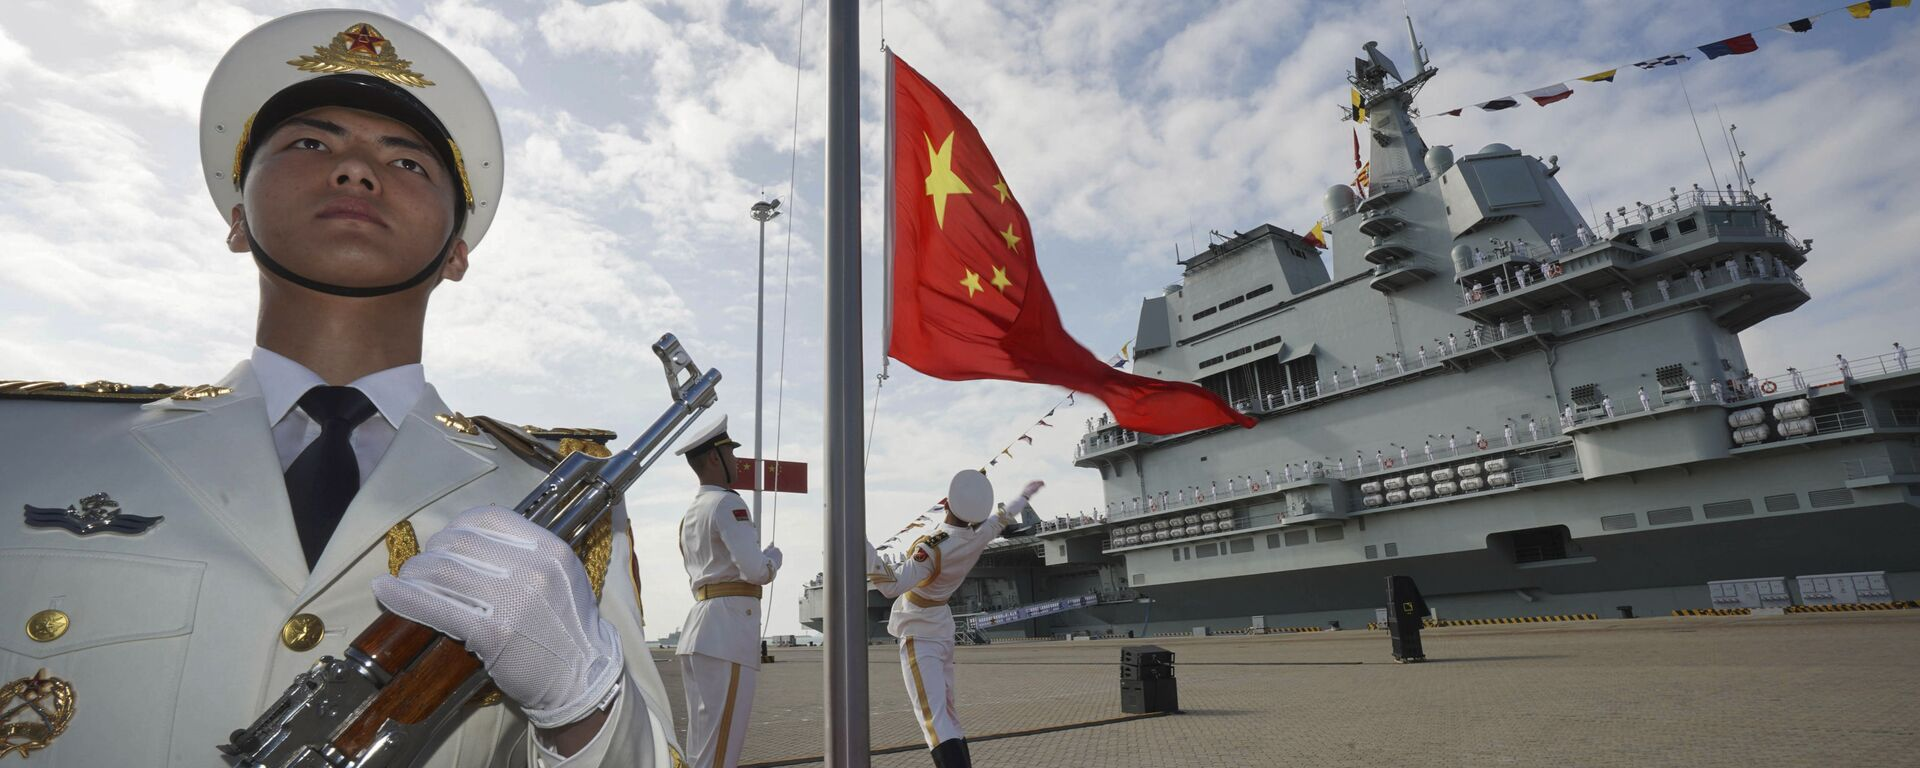 In this photo taken Dec. 17, 2019 and released Dec. 27, 2019 by Xinhua News Agency, Chinese honor guard raise the Chinese flag during the commissioning ceremony of China's Shandong aircraft carrier at a naval port in Sanya, south China's Hainan Province - Sputnik International, 1920, 16.09.2021